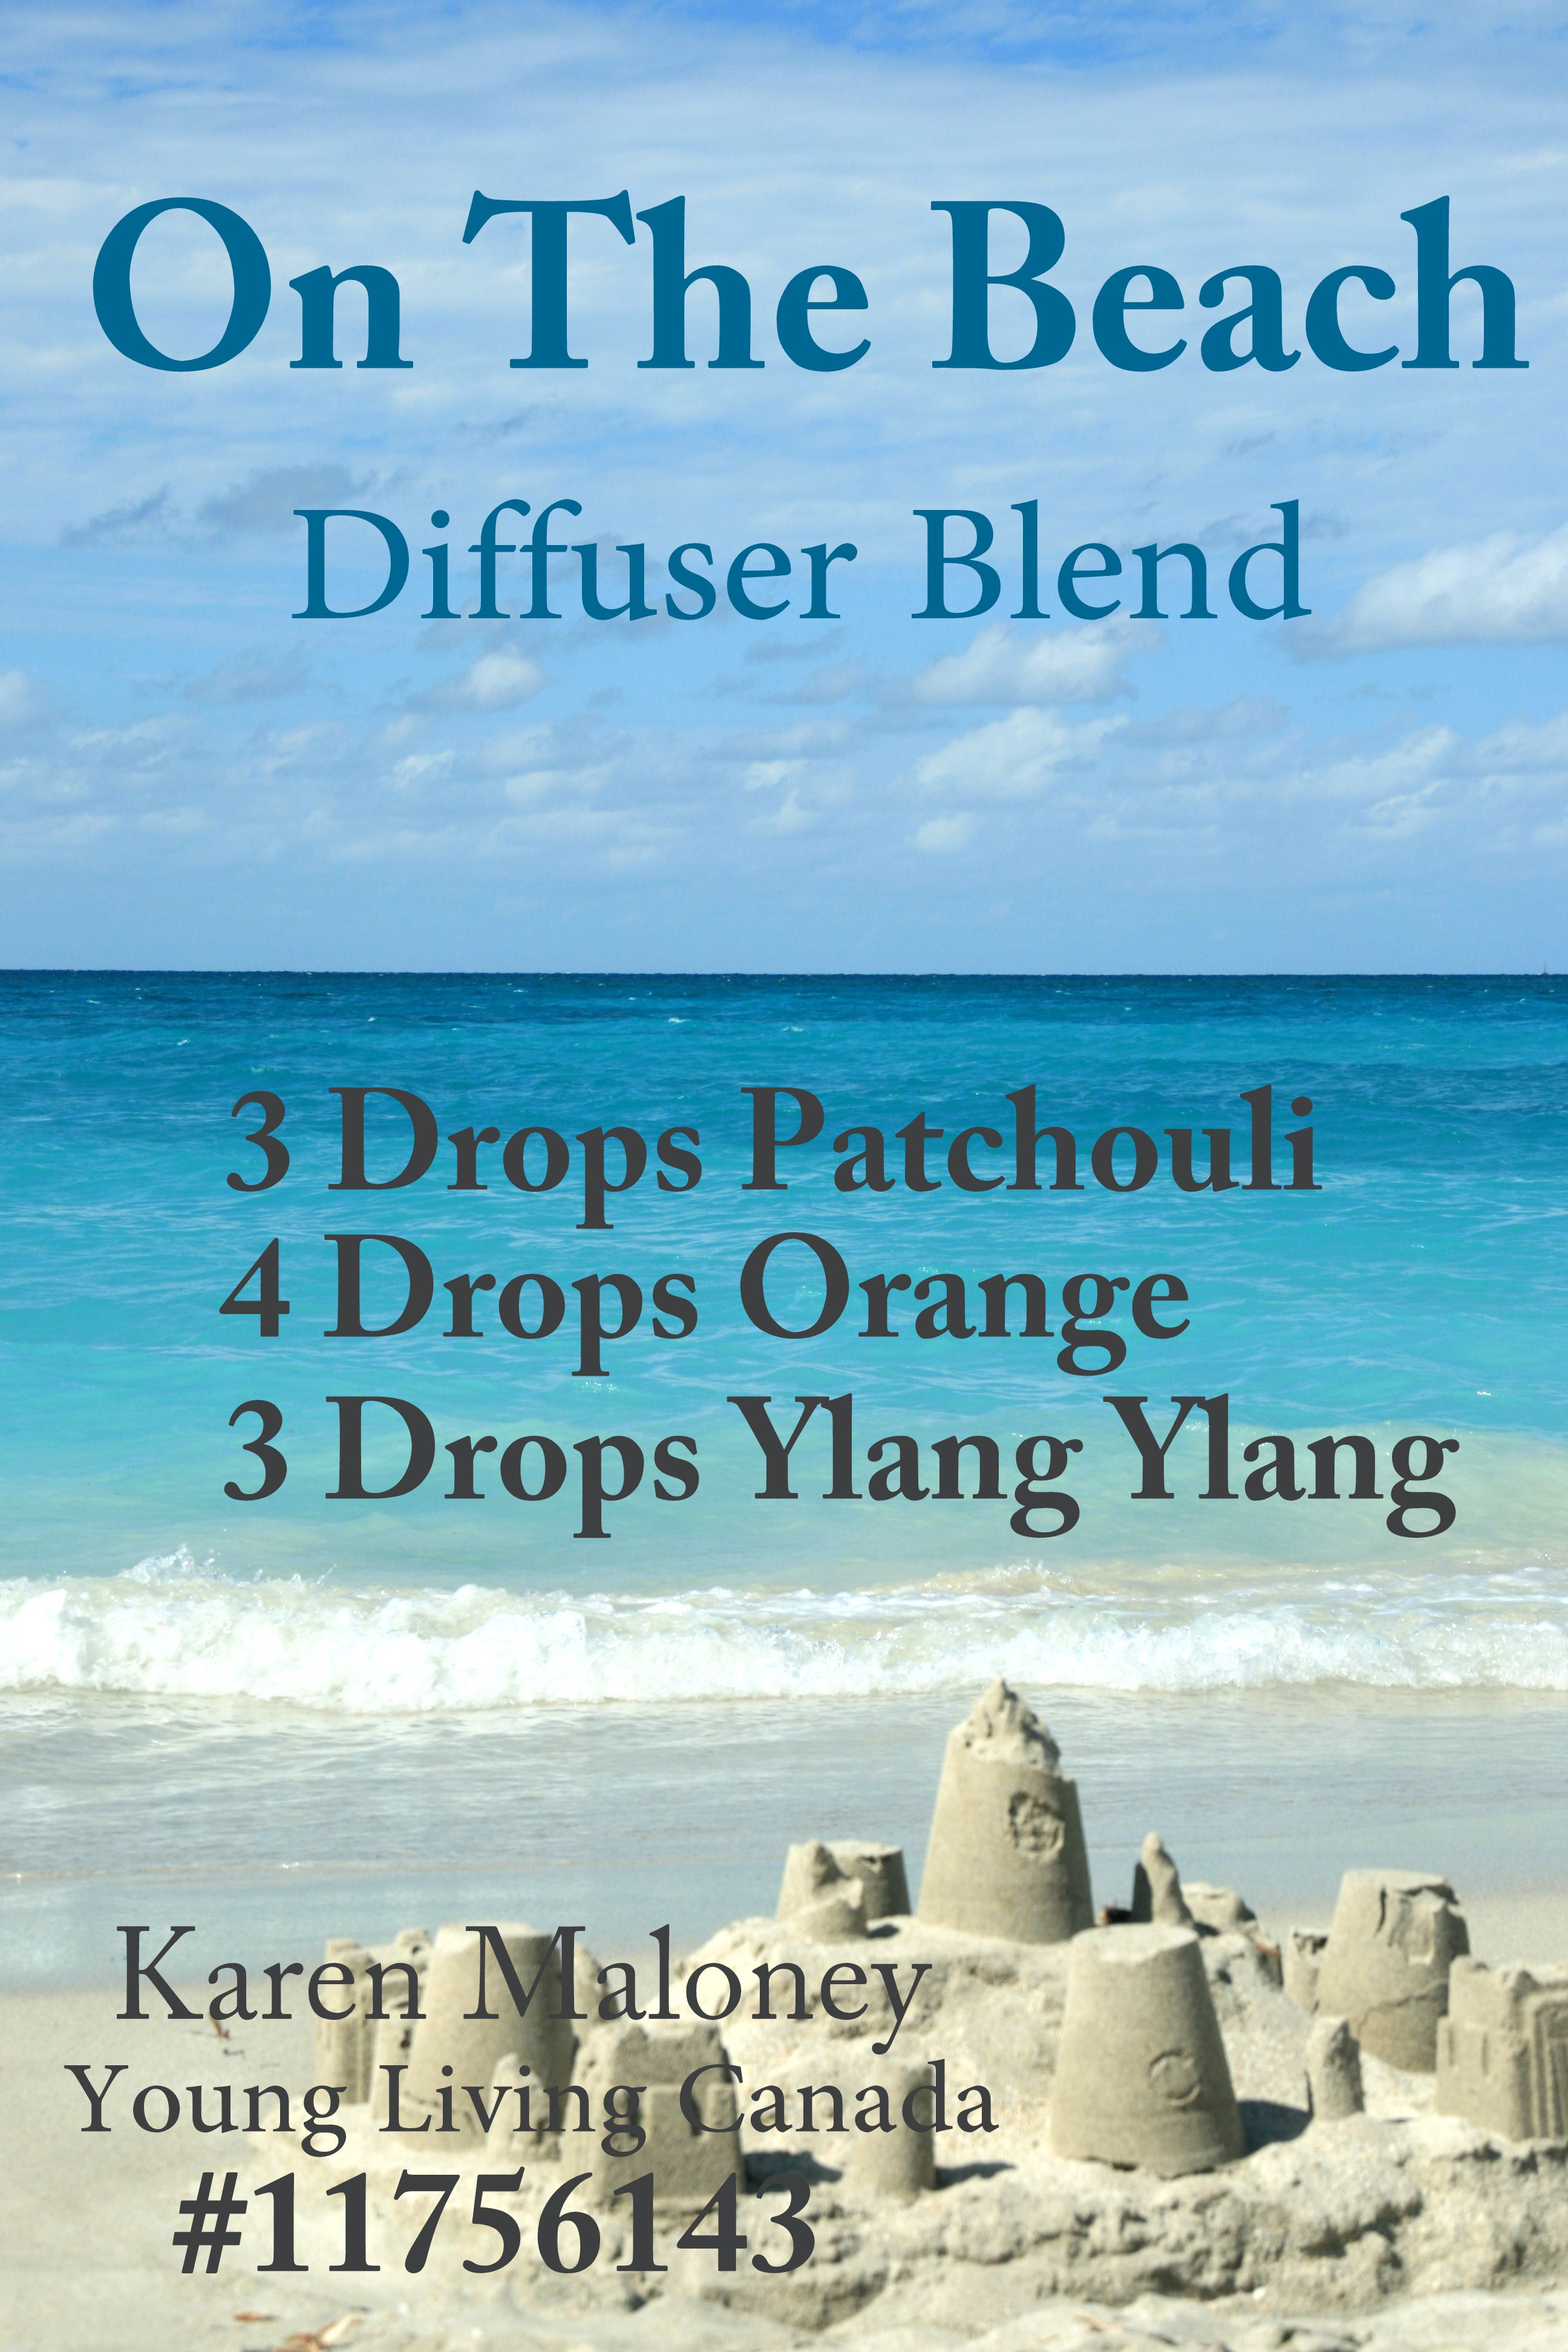 On the Beach,Diffuser Blend (With images) Young living